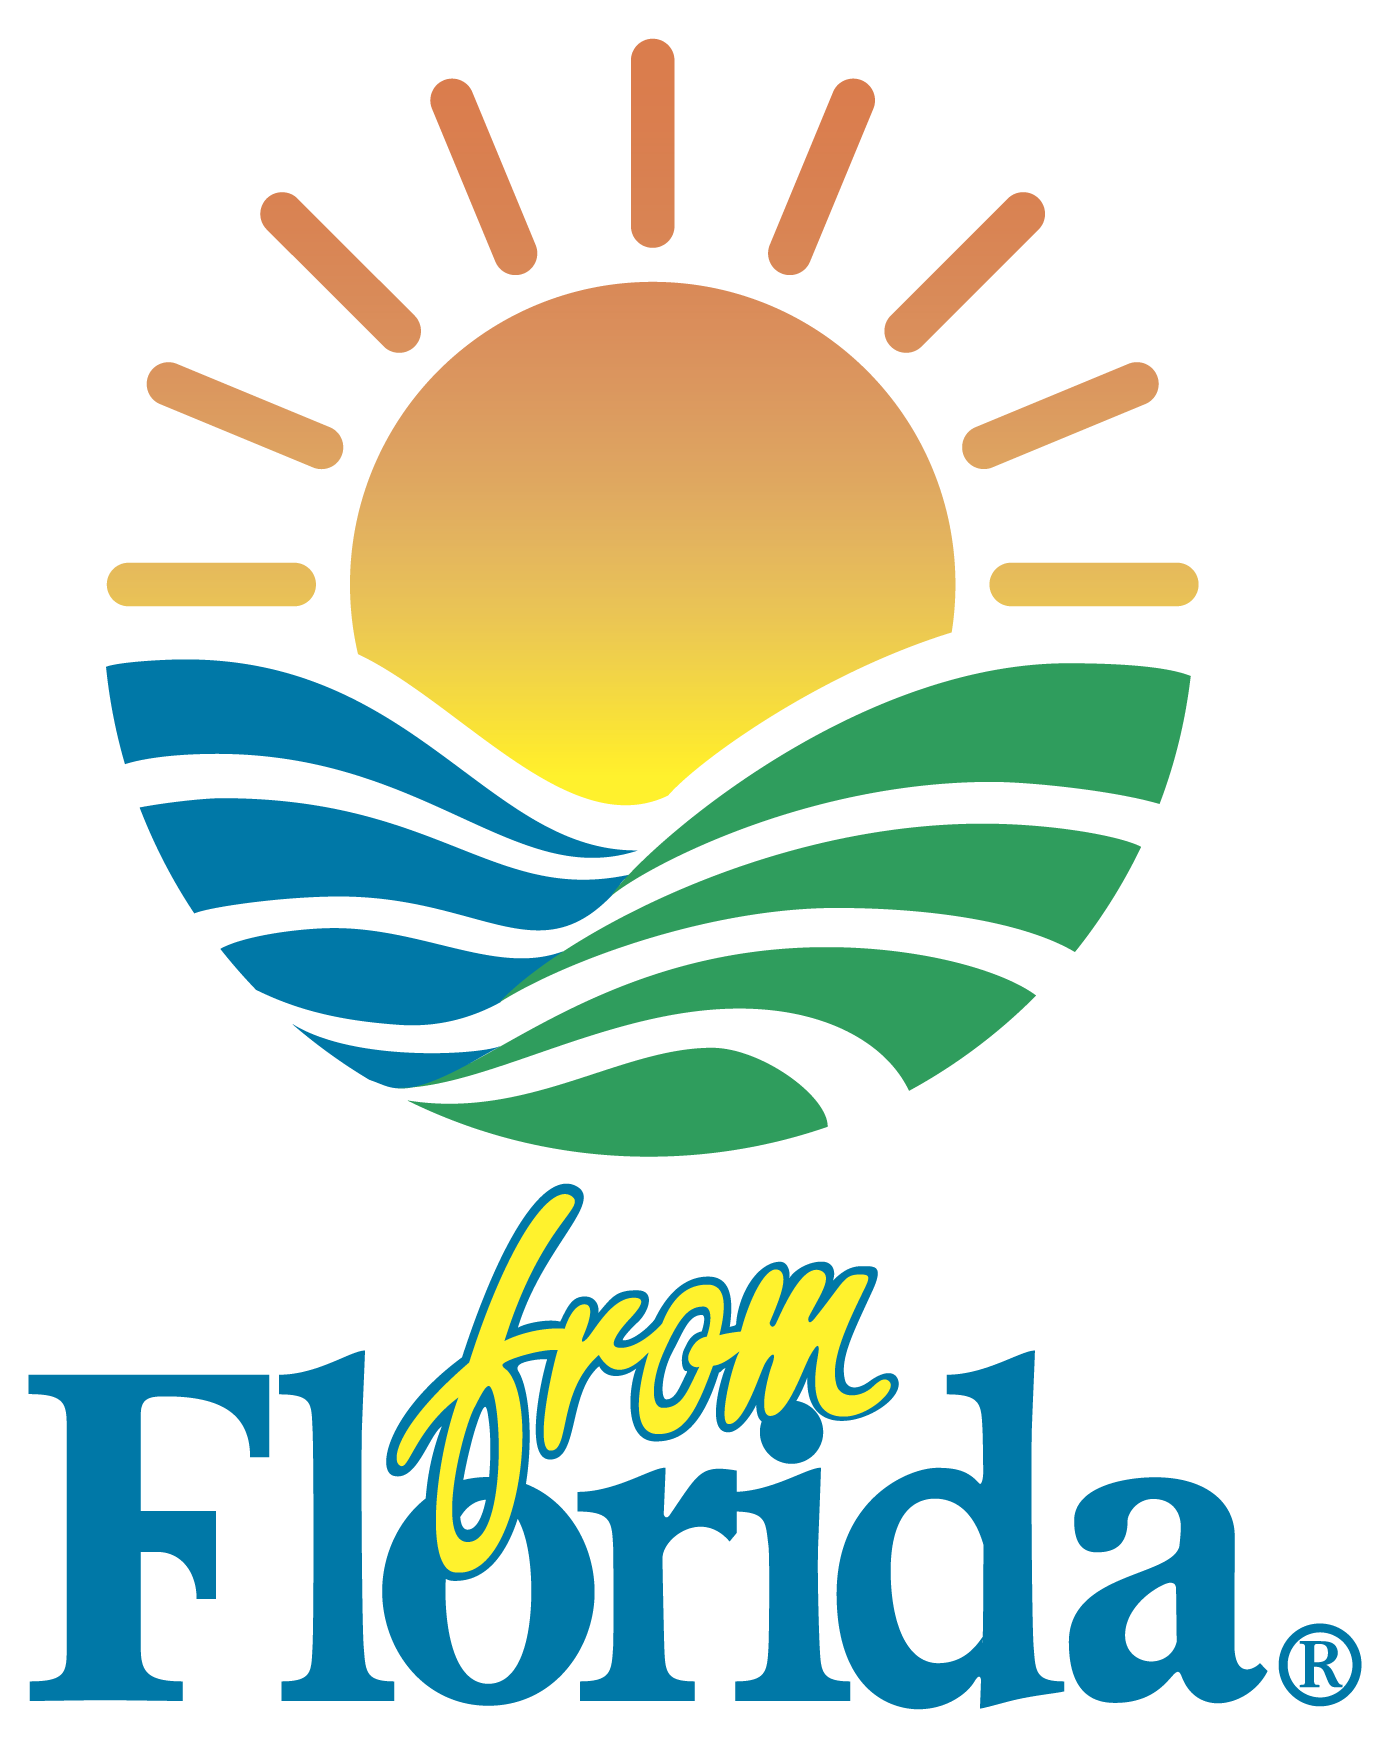 From Florida logo